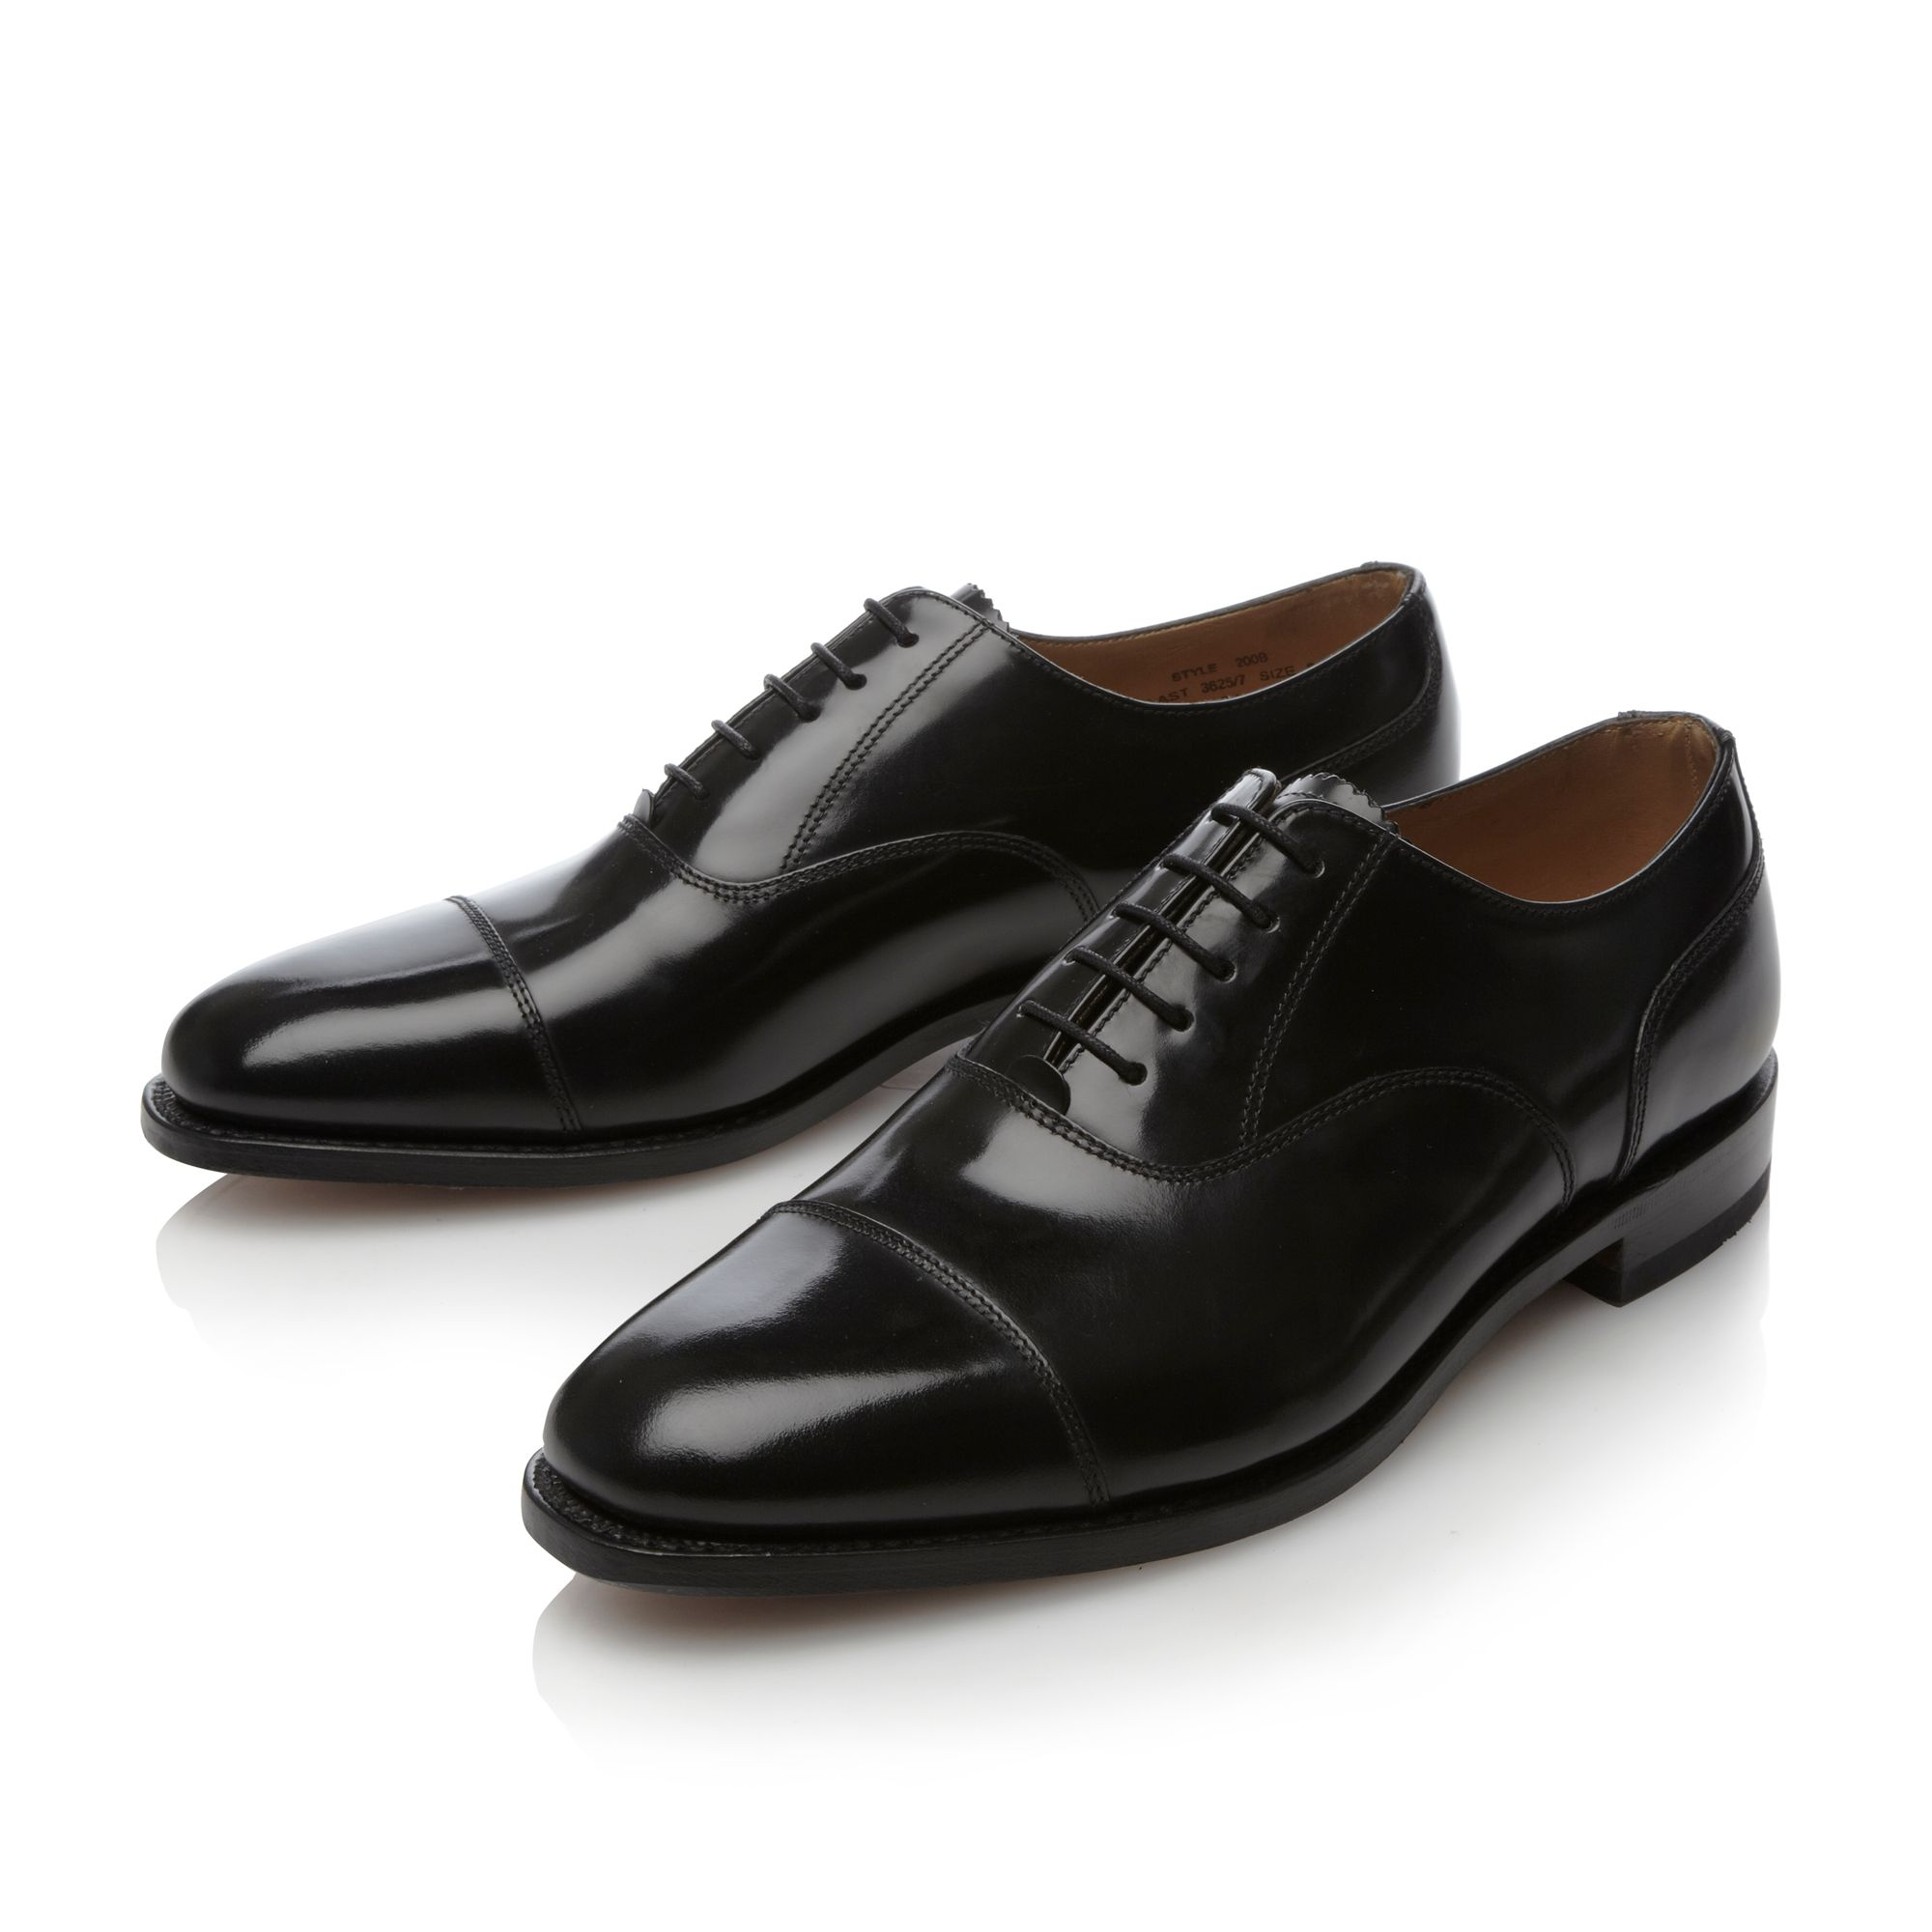 200 formal shoes